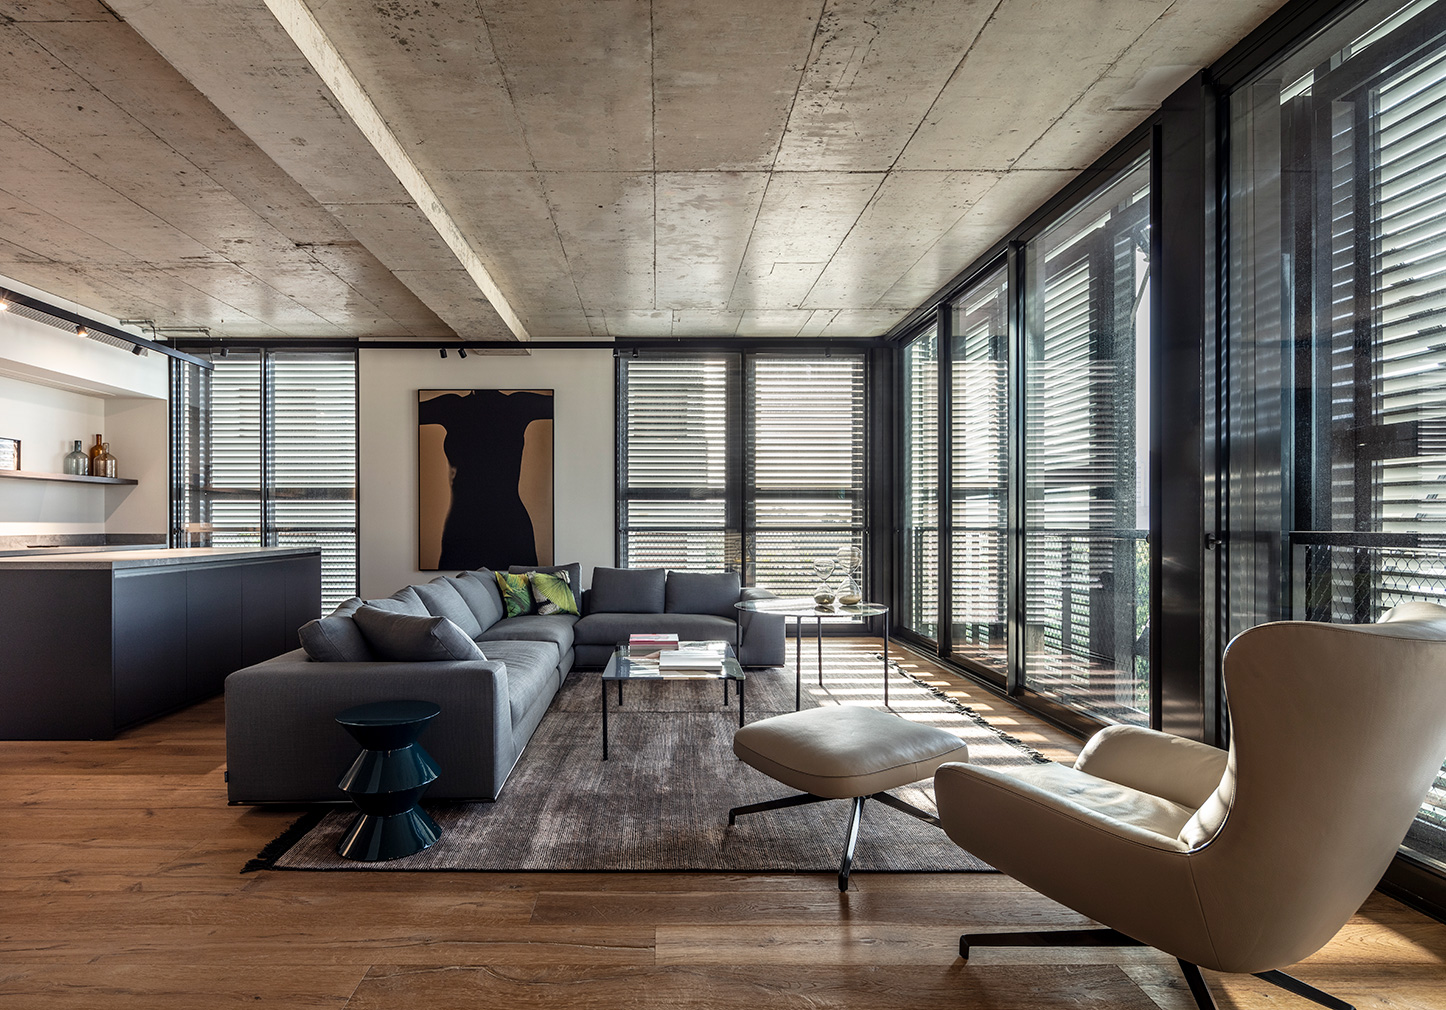 Tel Aviv hotel The Levee blends marries old and new